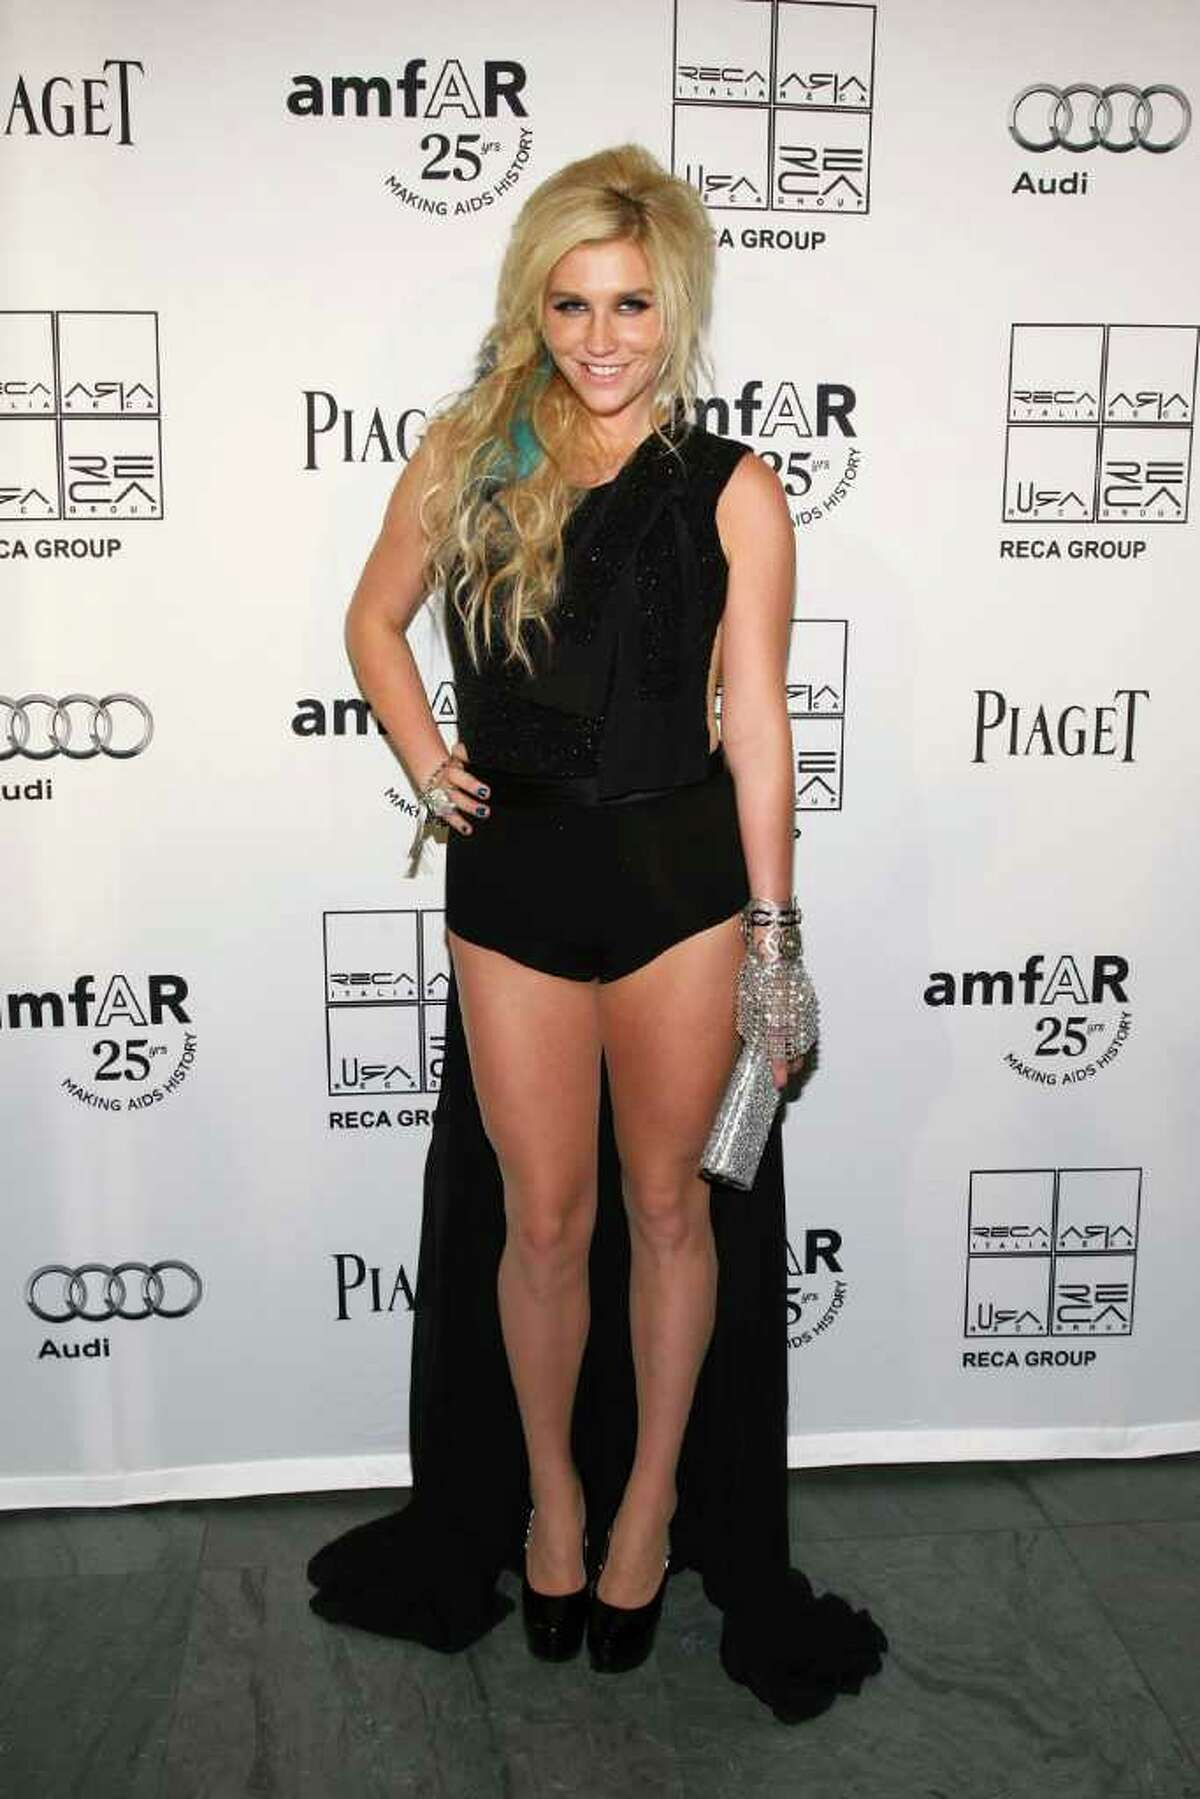 Before we continue with the (mostly) male models on the runway, let's check out some arrivals, starting with singer Ke$ha.